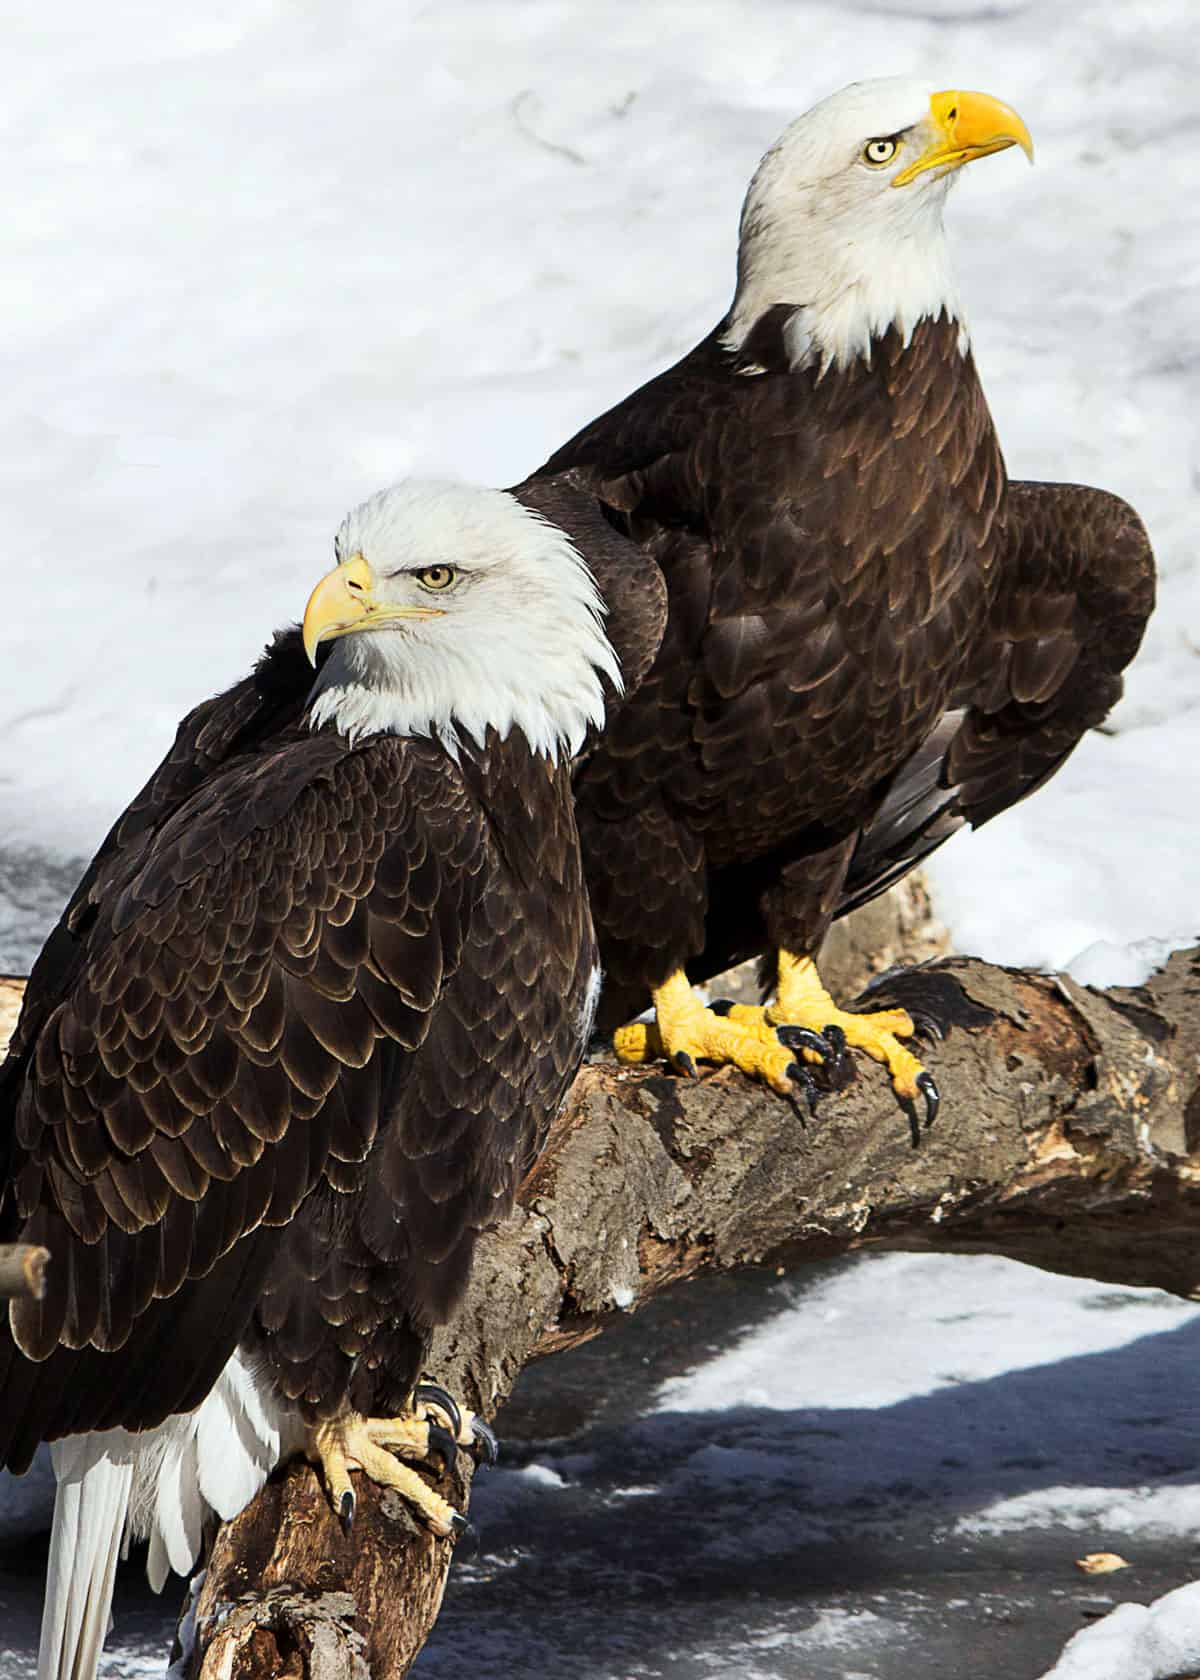 bald eagles mate for life